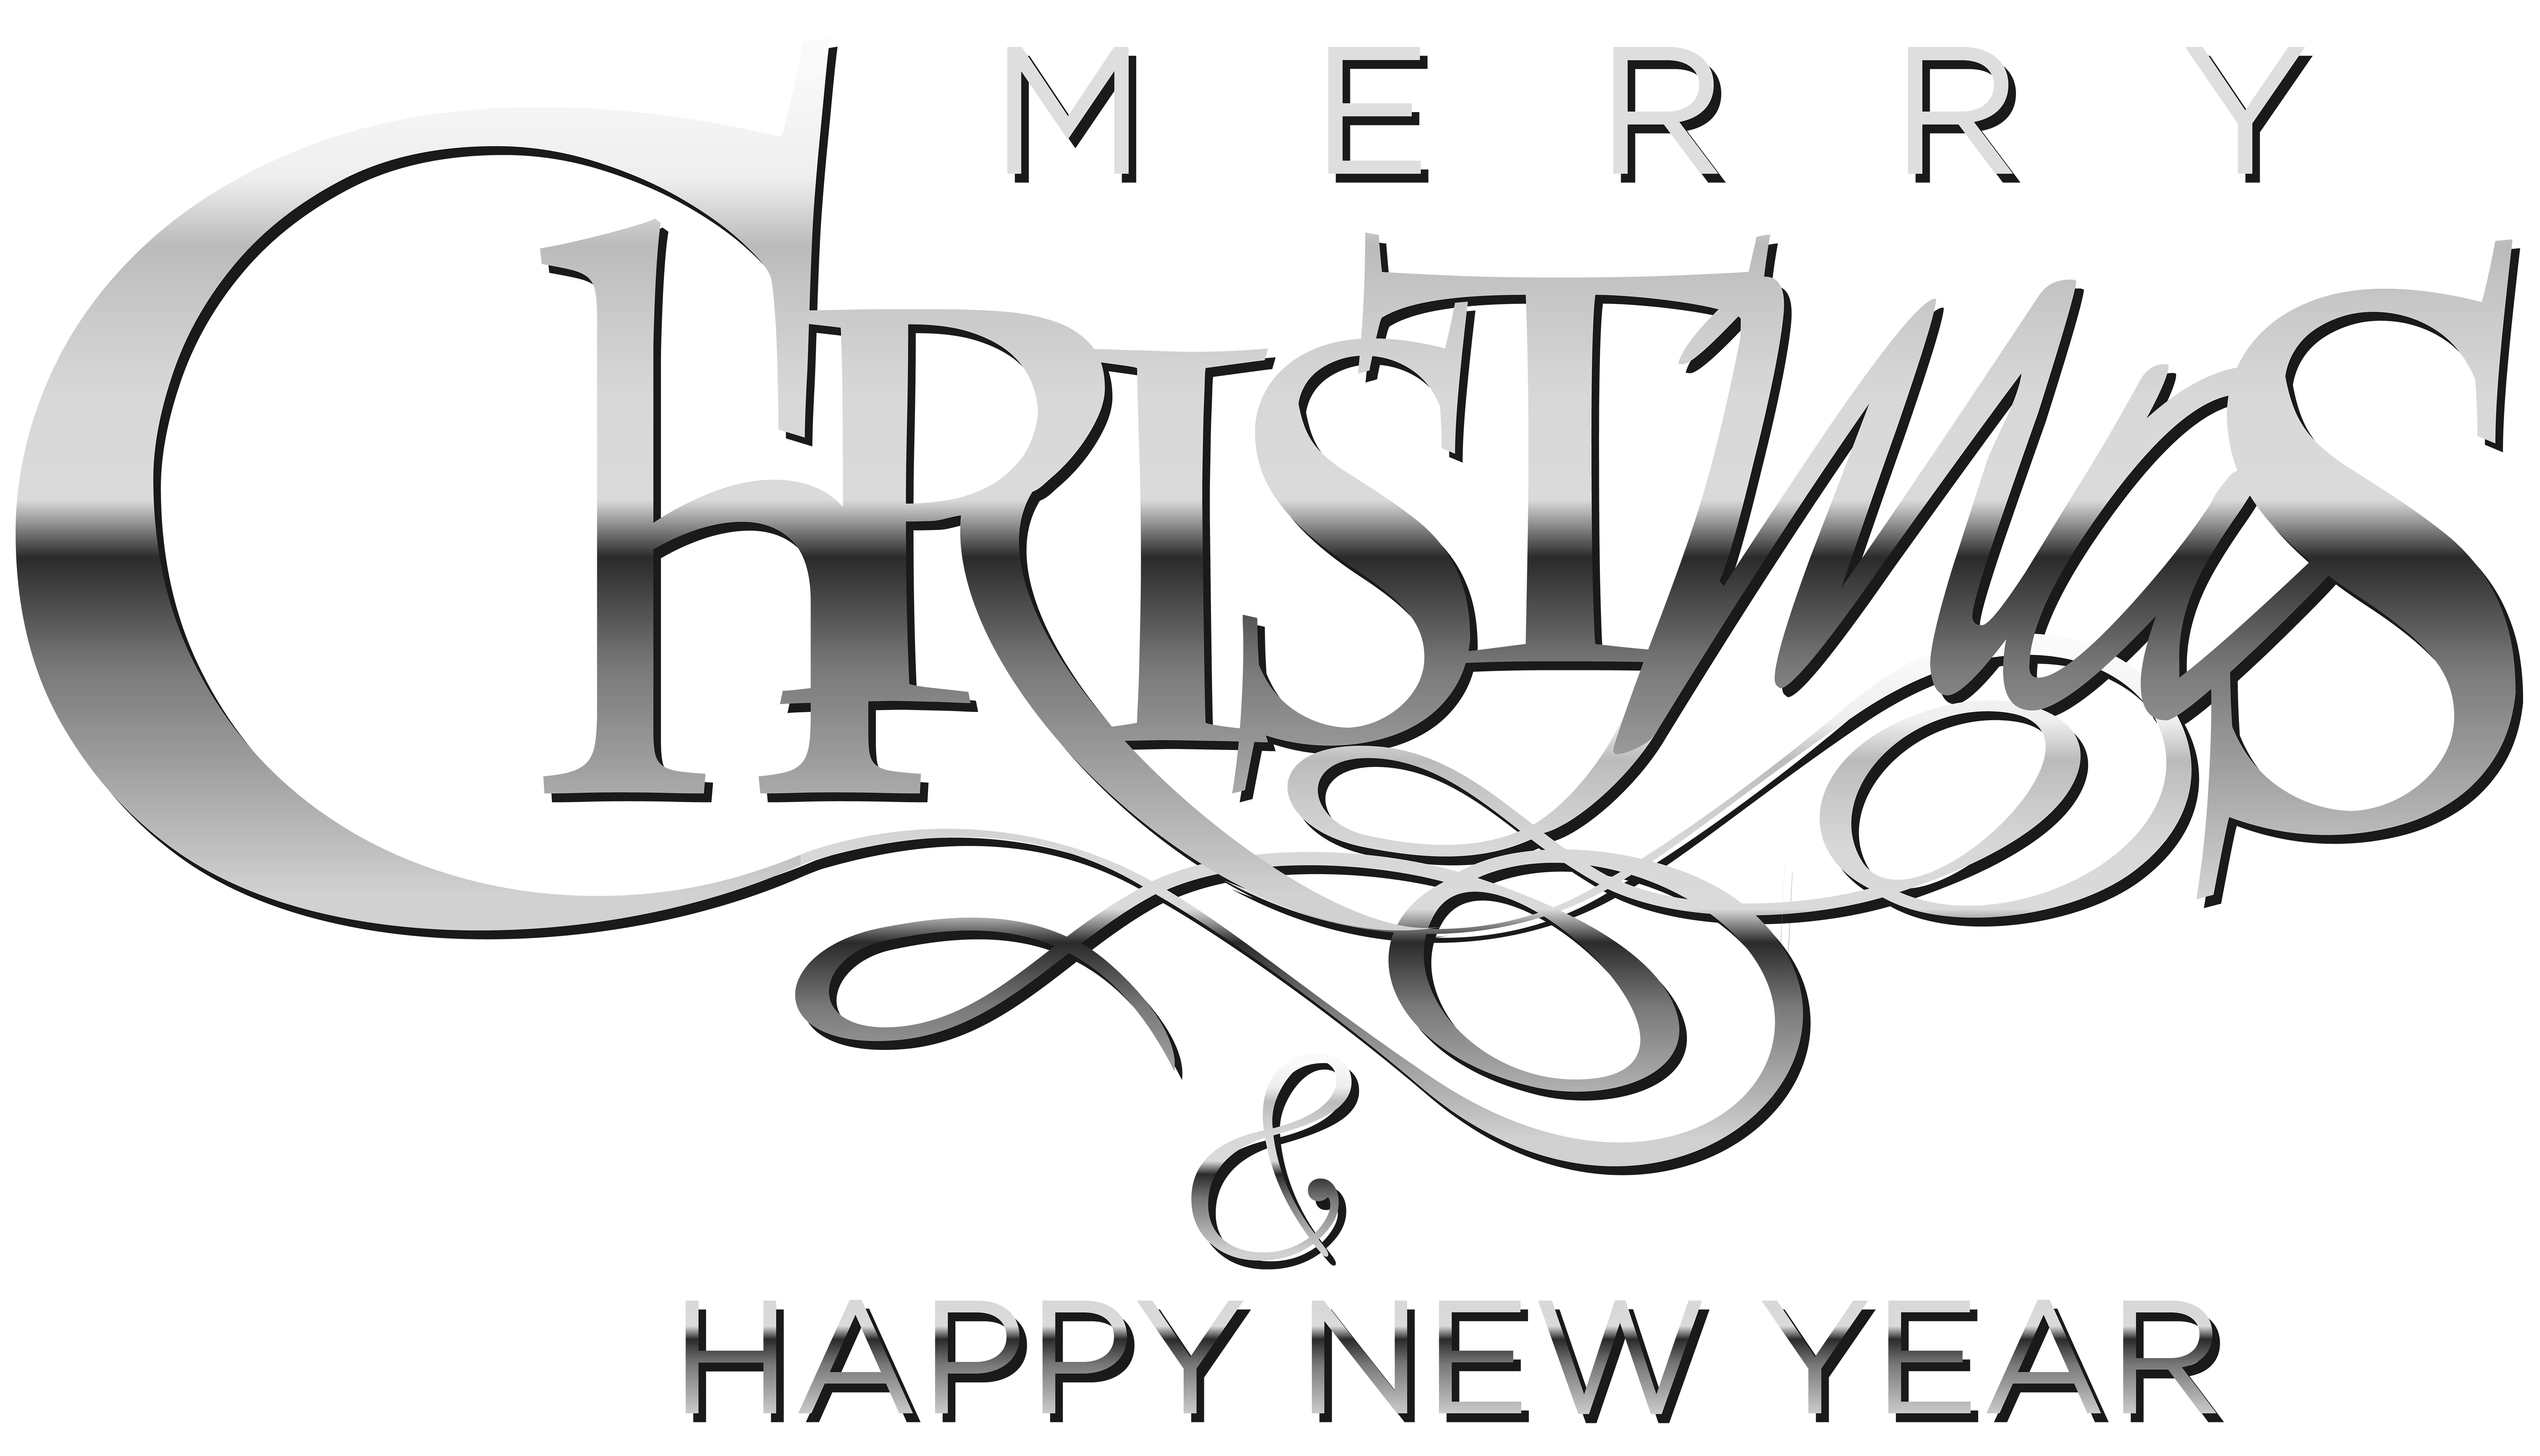 Merry Christmas And Happy New Year Clipart Png.